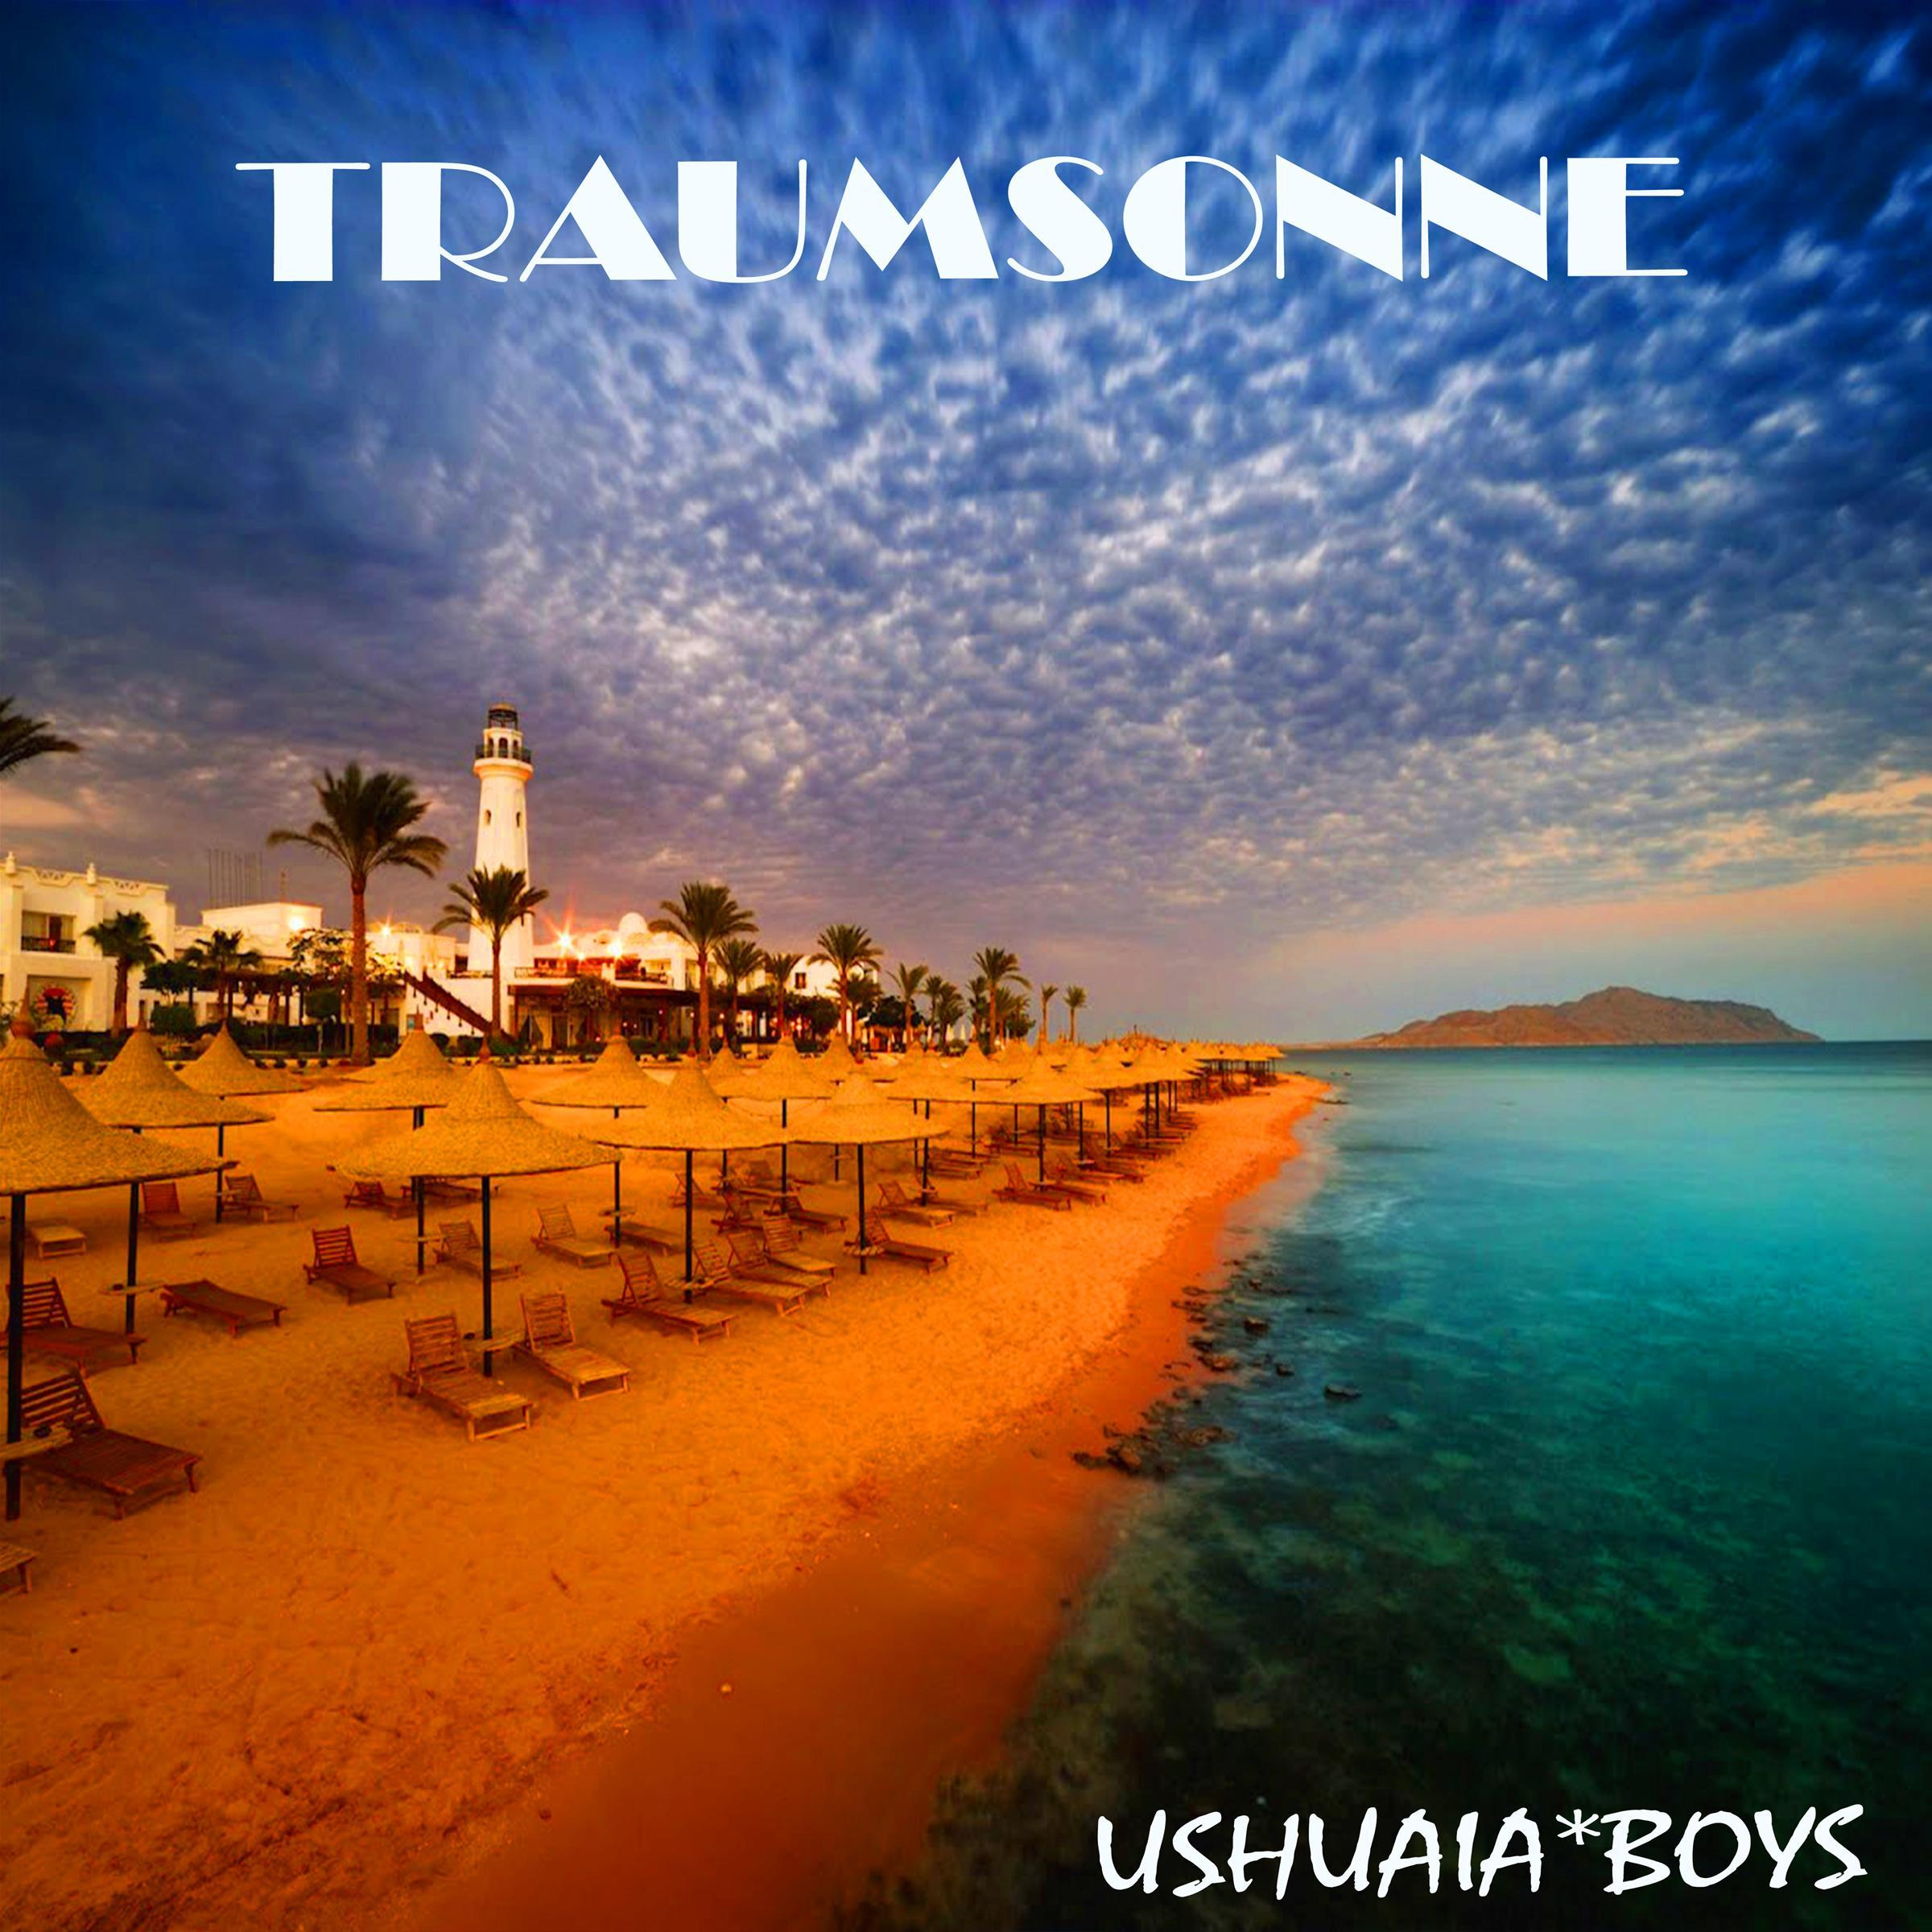 Traumsonne (Mark Feesh & Gerry Verano Club Mix)